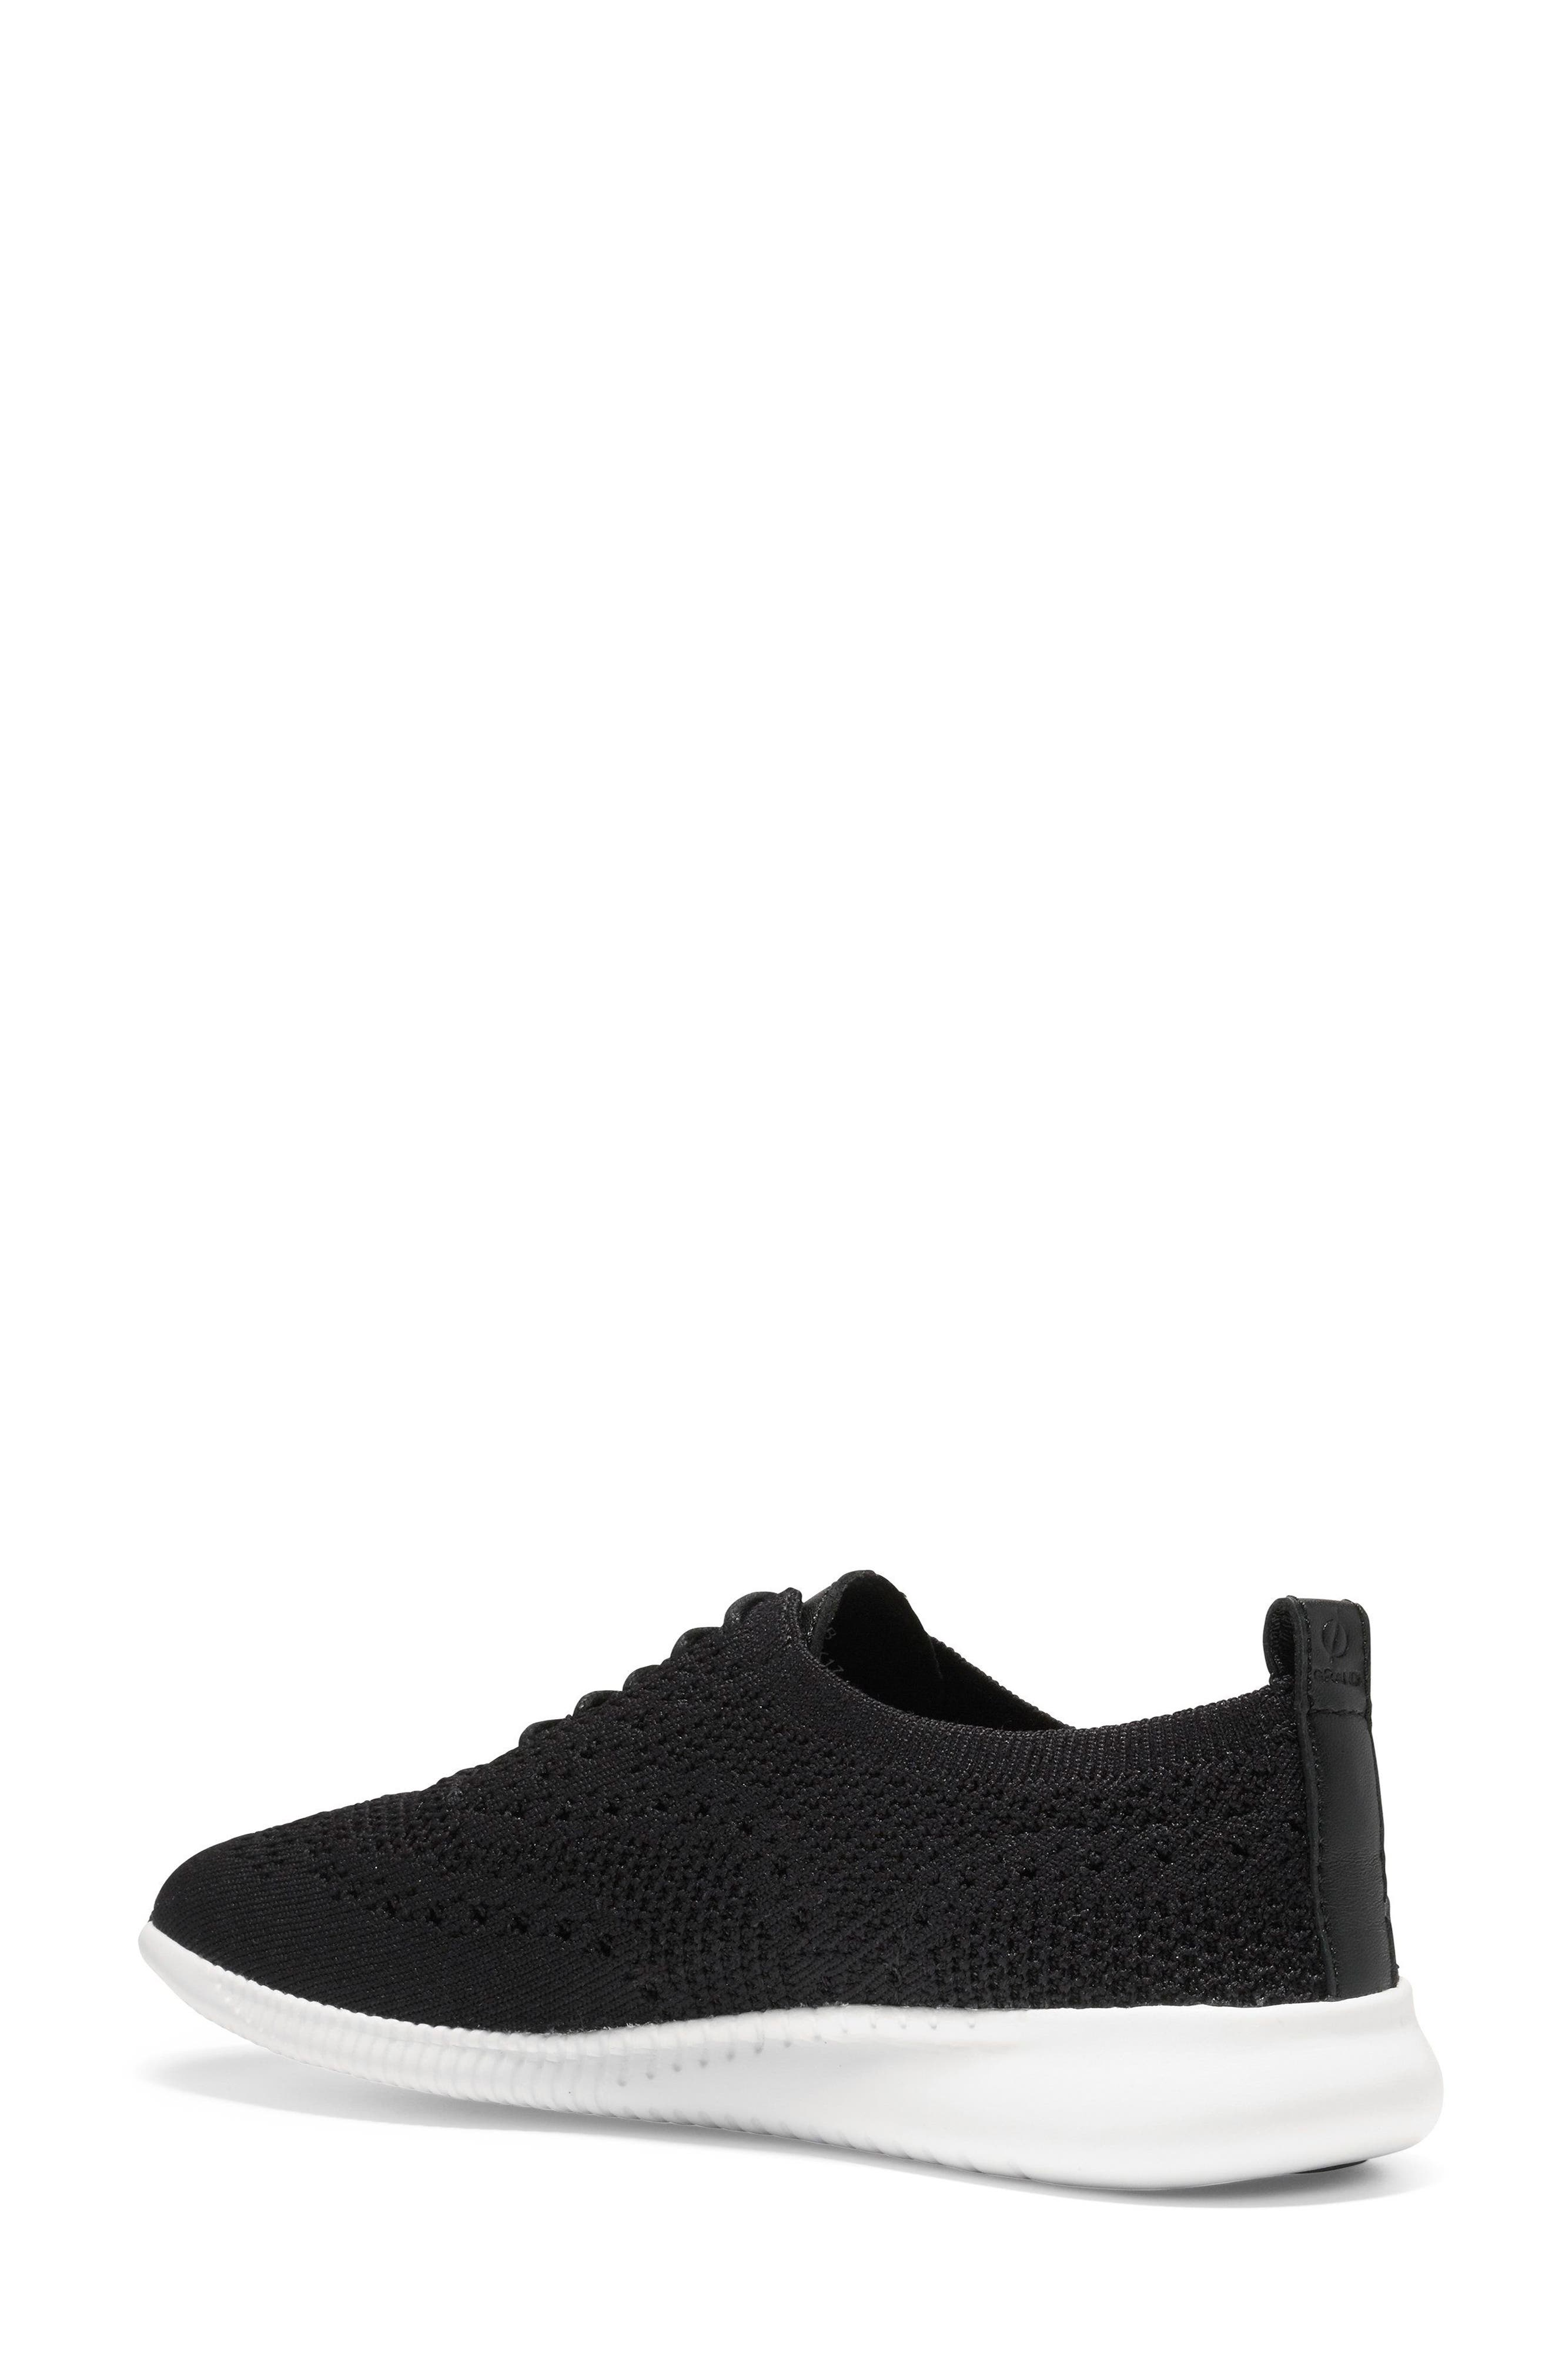 2.ZERØGRAND Stitchlite Wingtip Sneaker,                             Alternate thumbnail 2, color,                             BLACK FABRIC